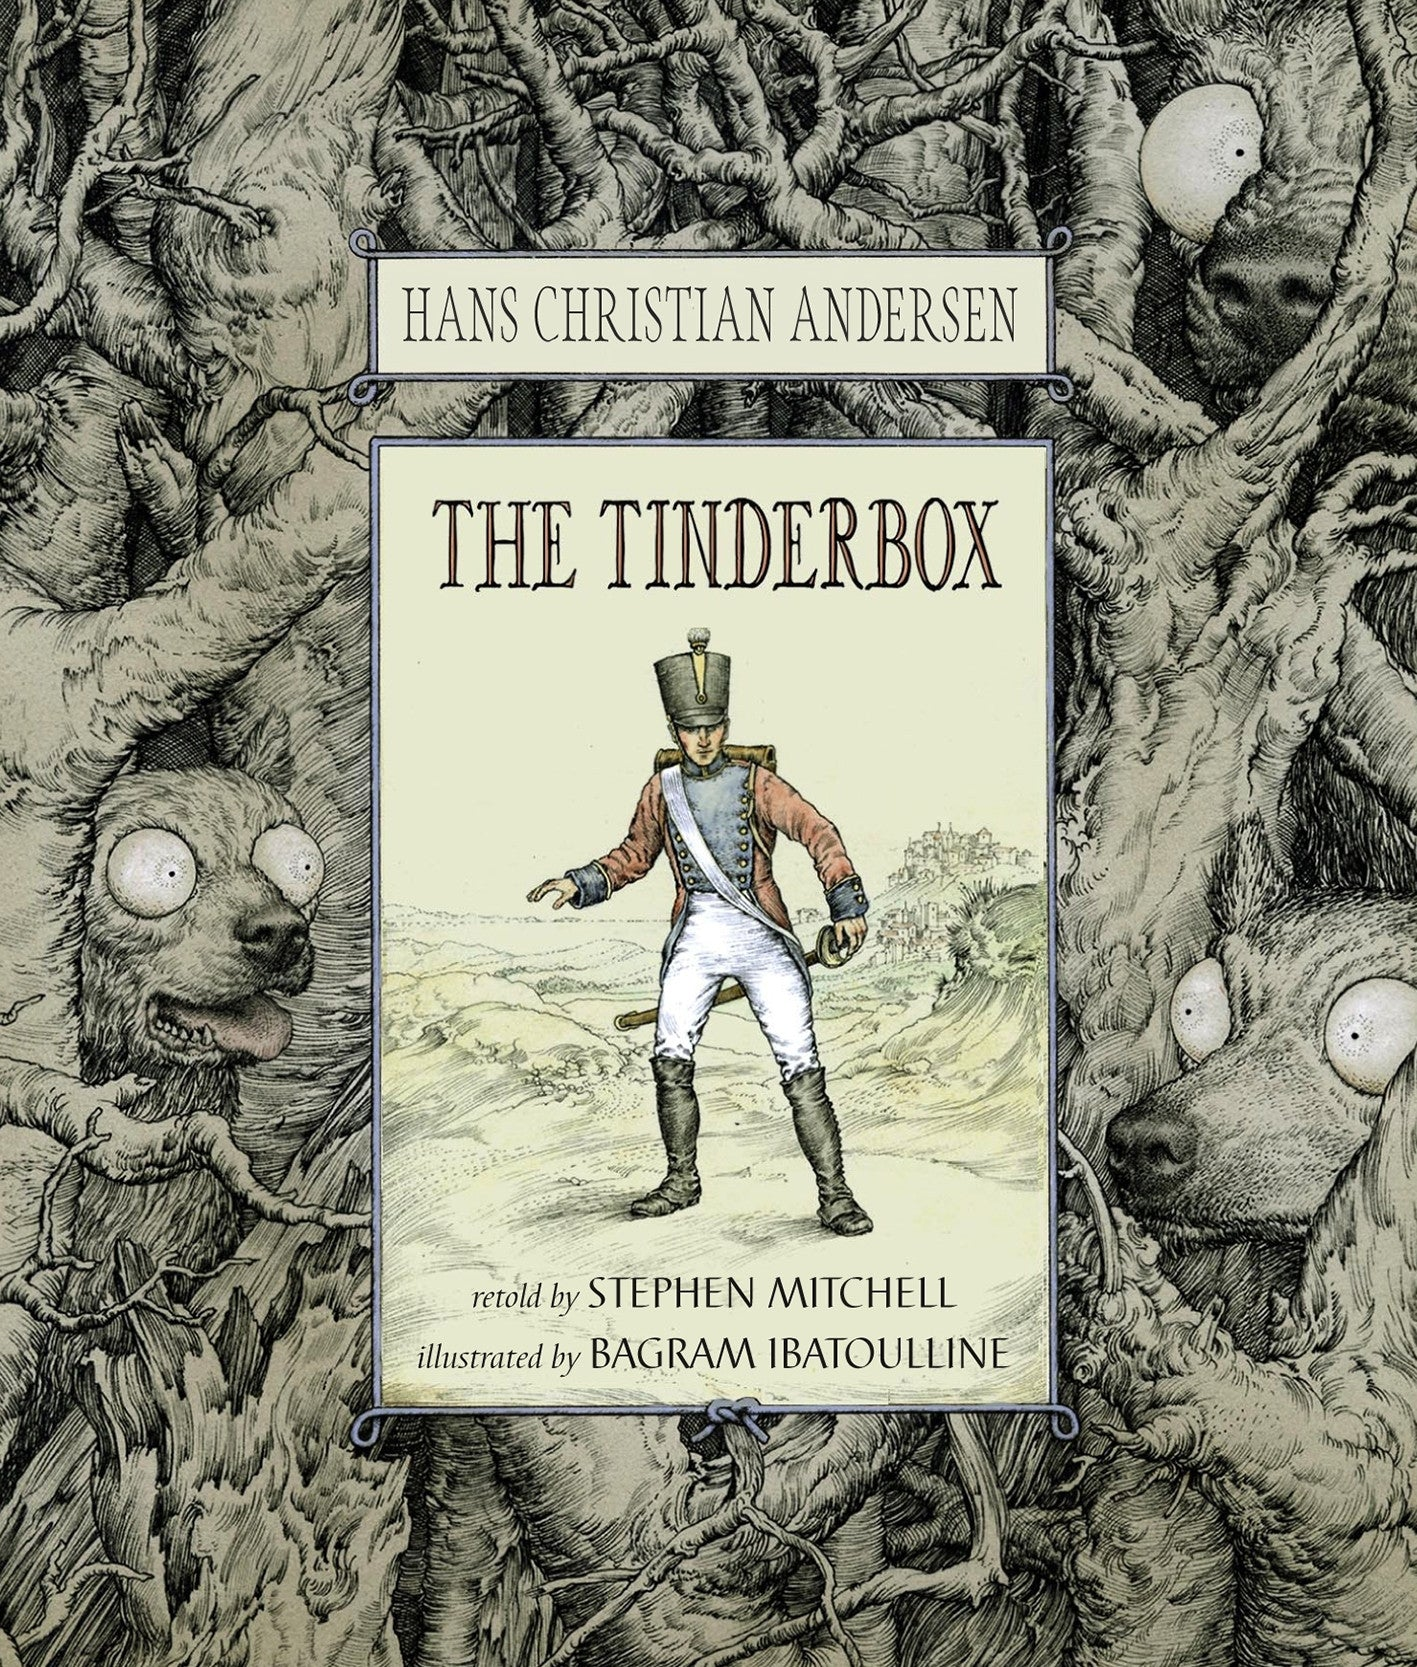 The Tinderbox - Retold by Stephen Mitchell